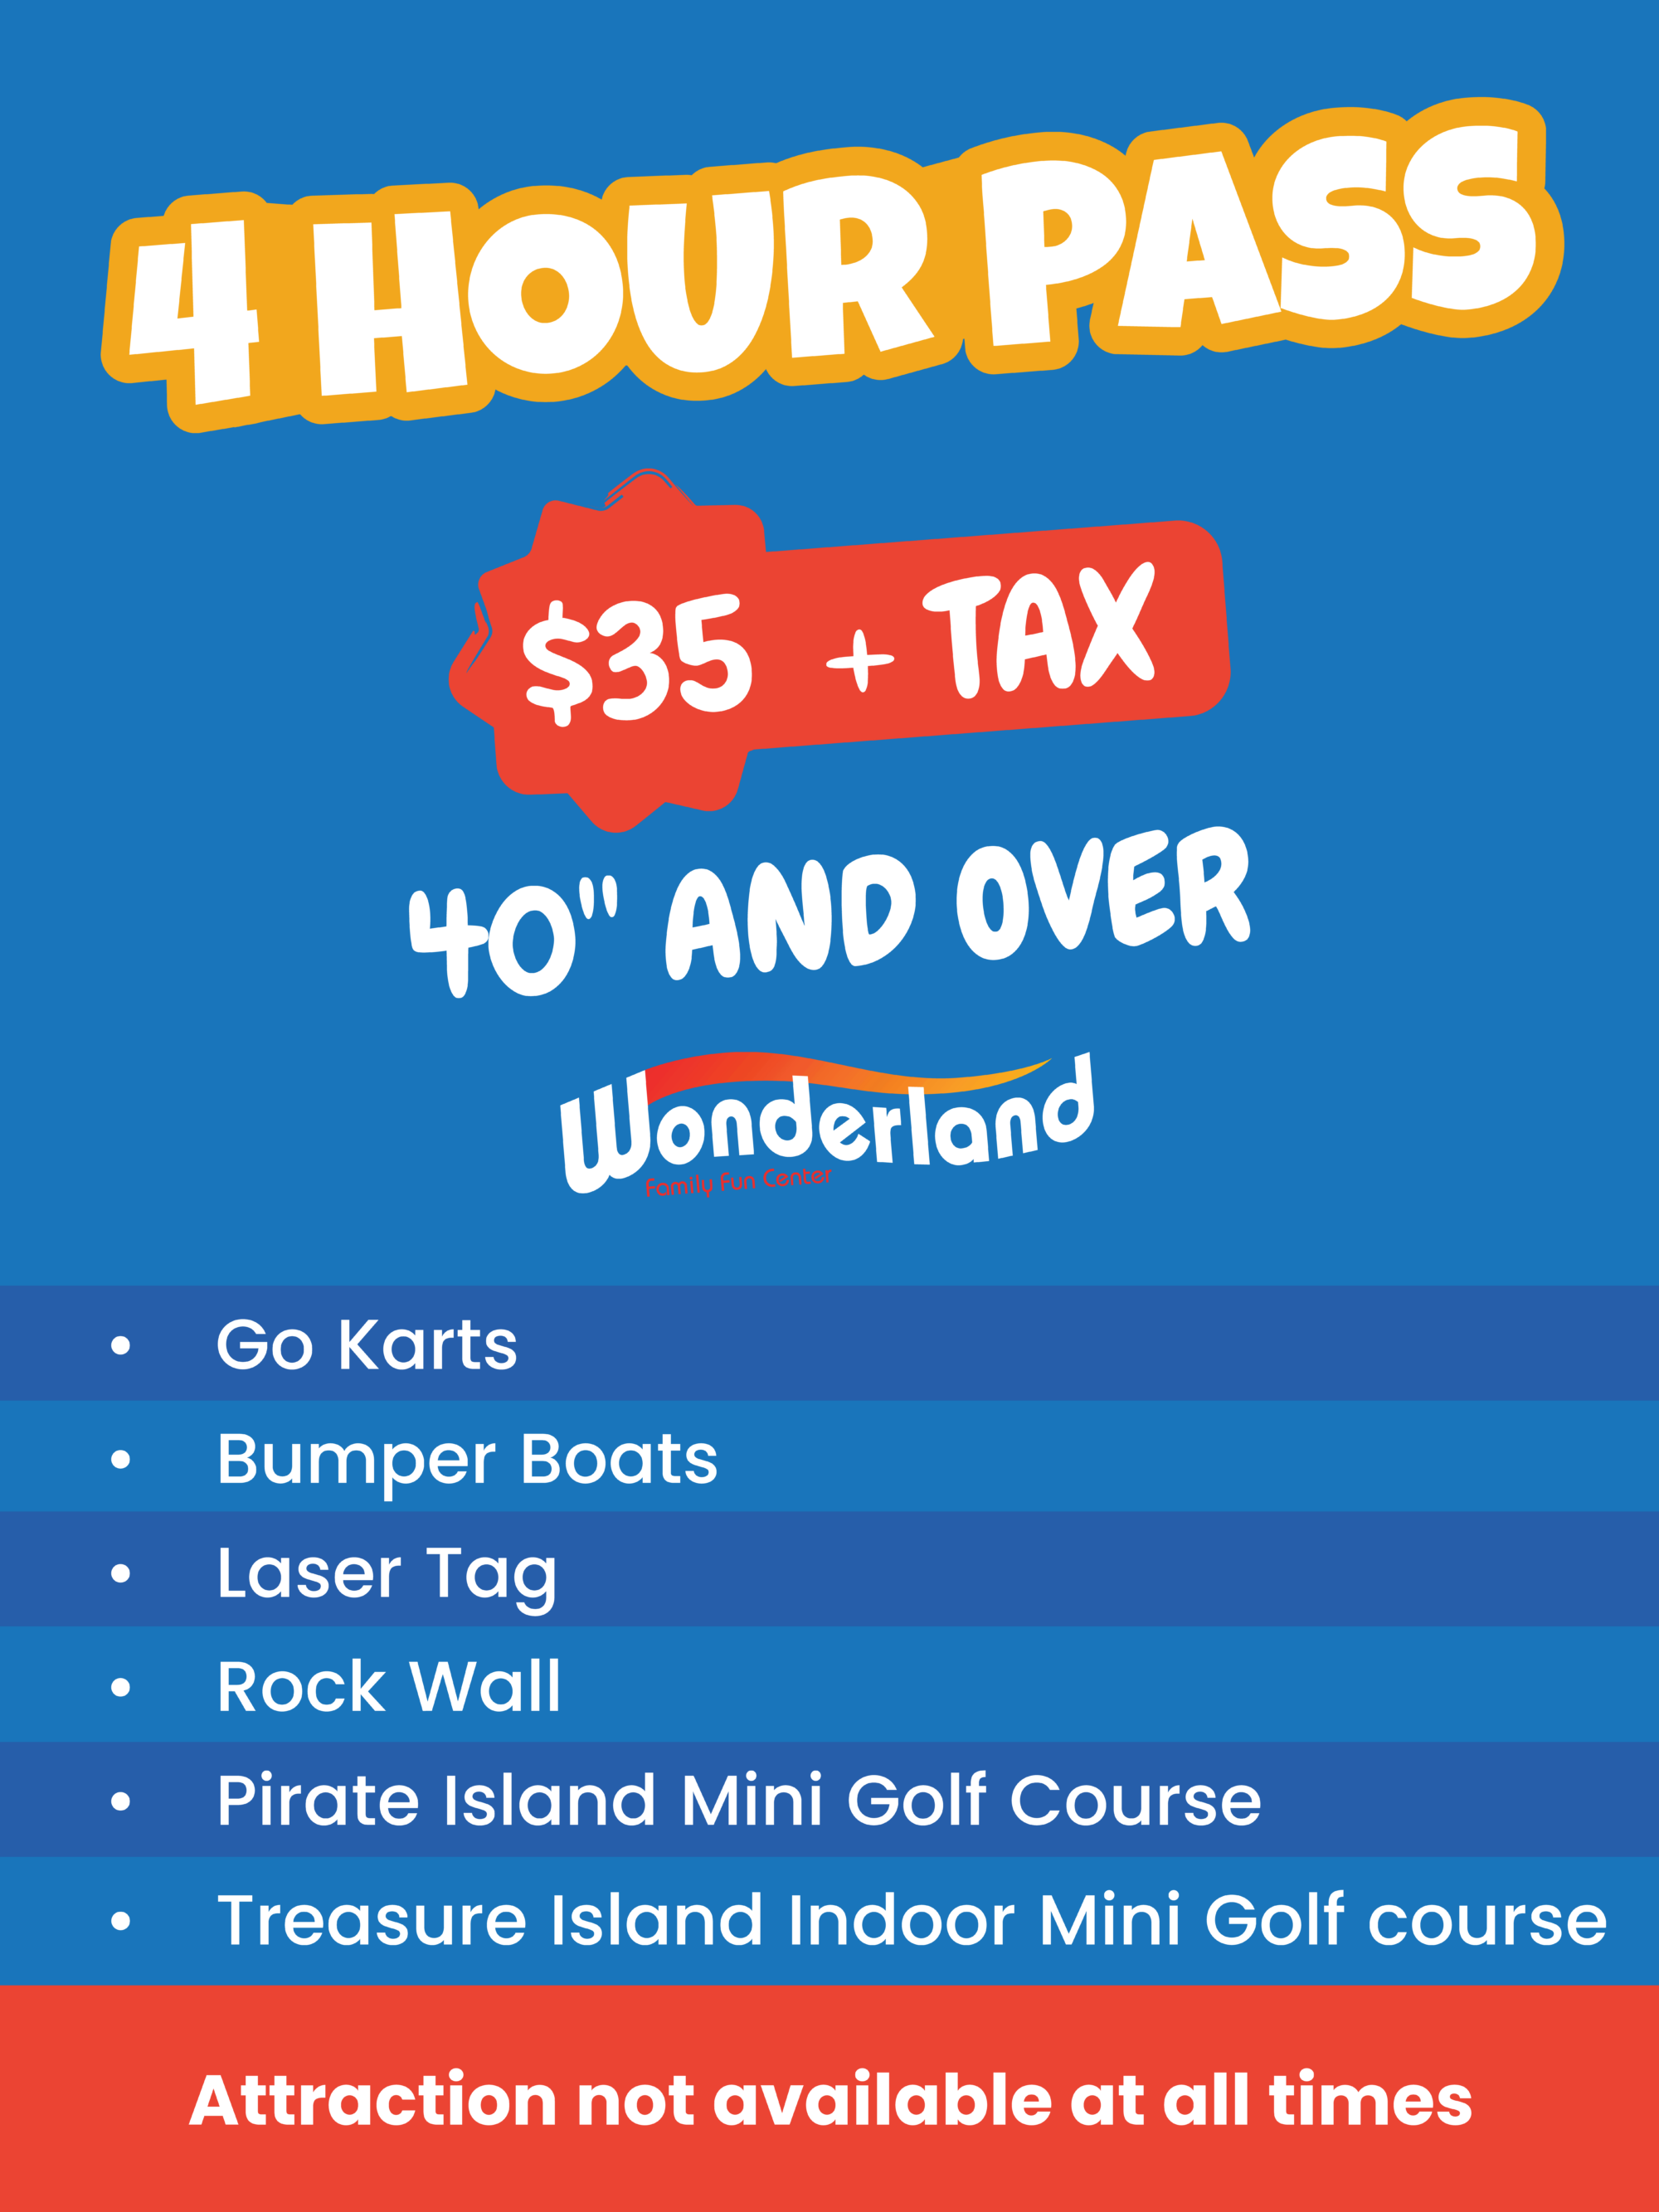 4 Hour Pass - Only $35